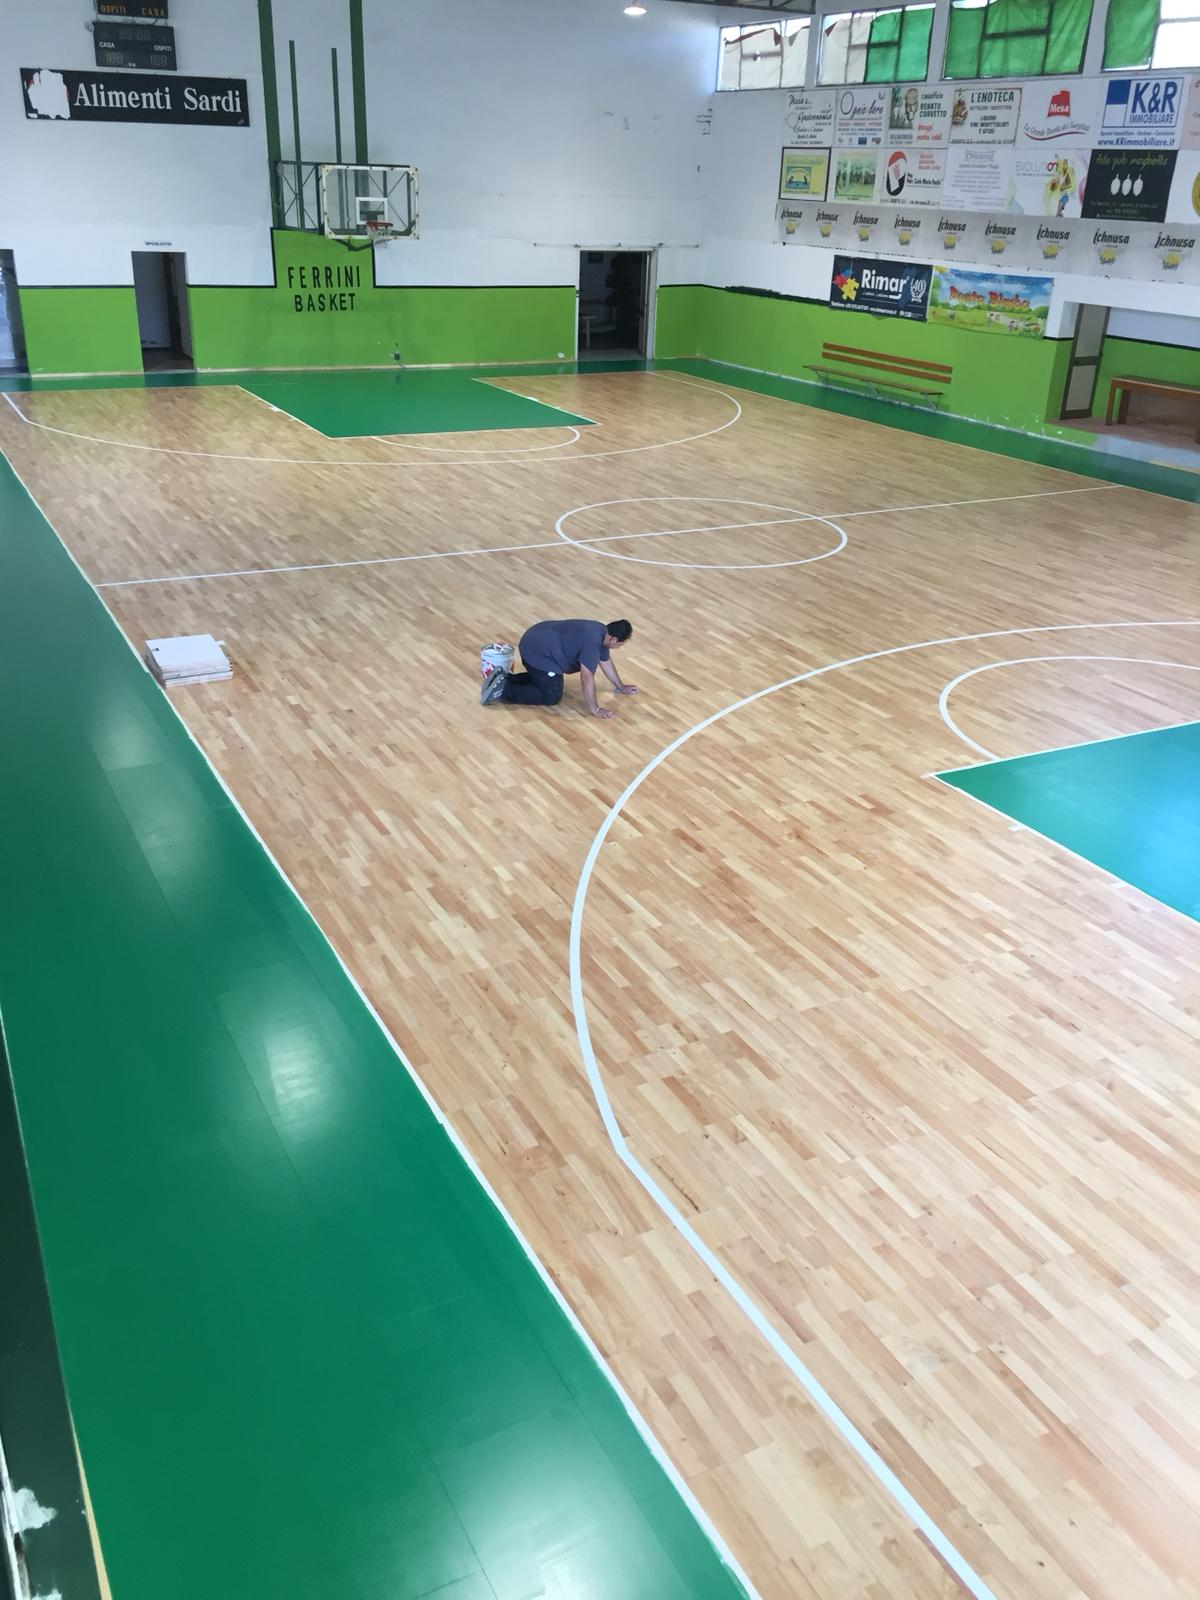 Last touches to the flooring